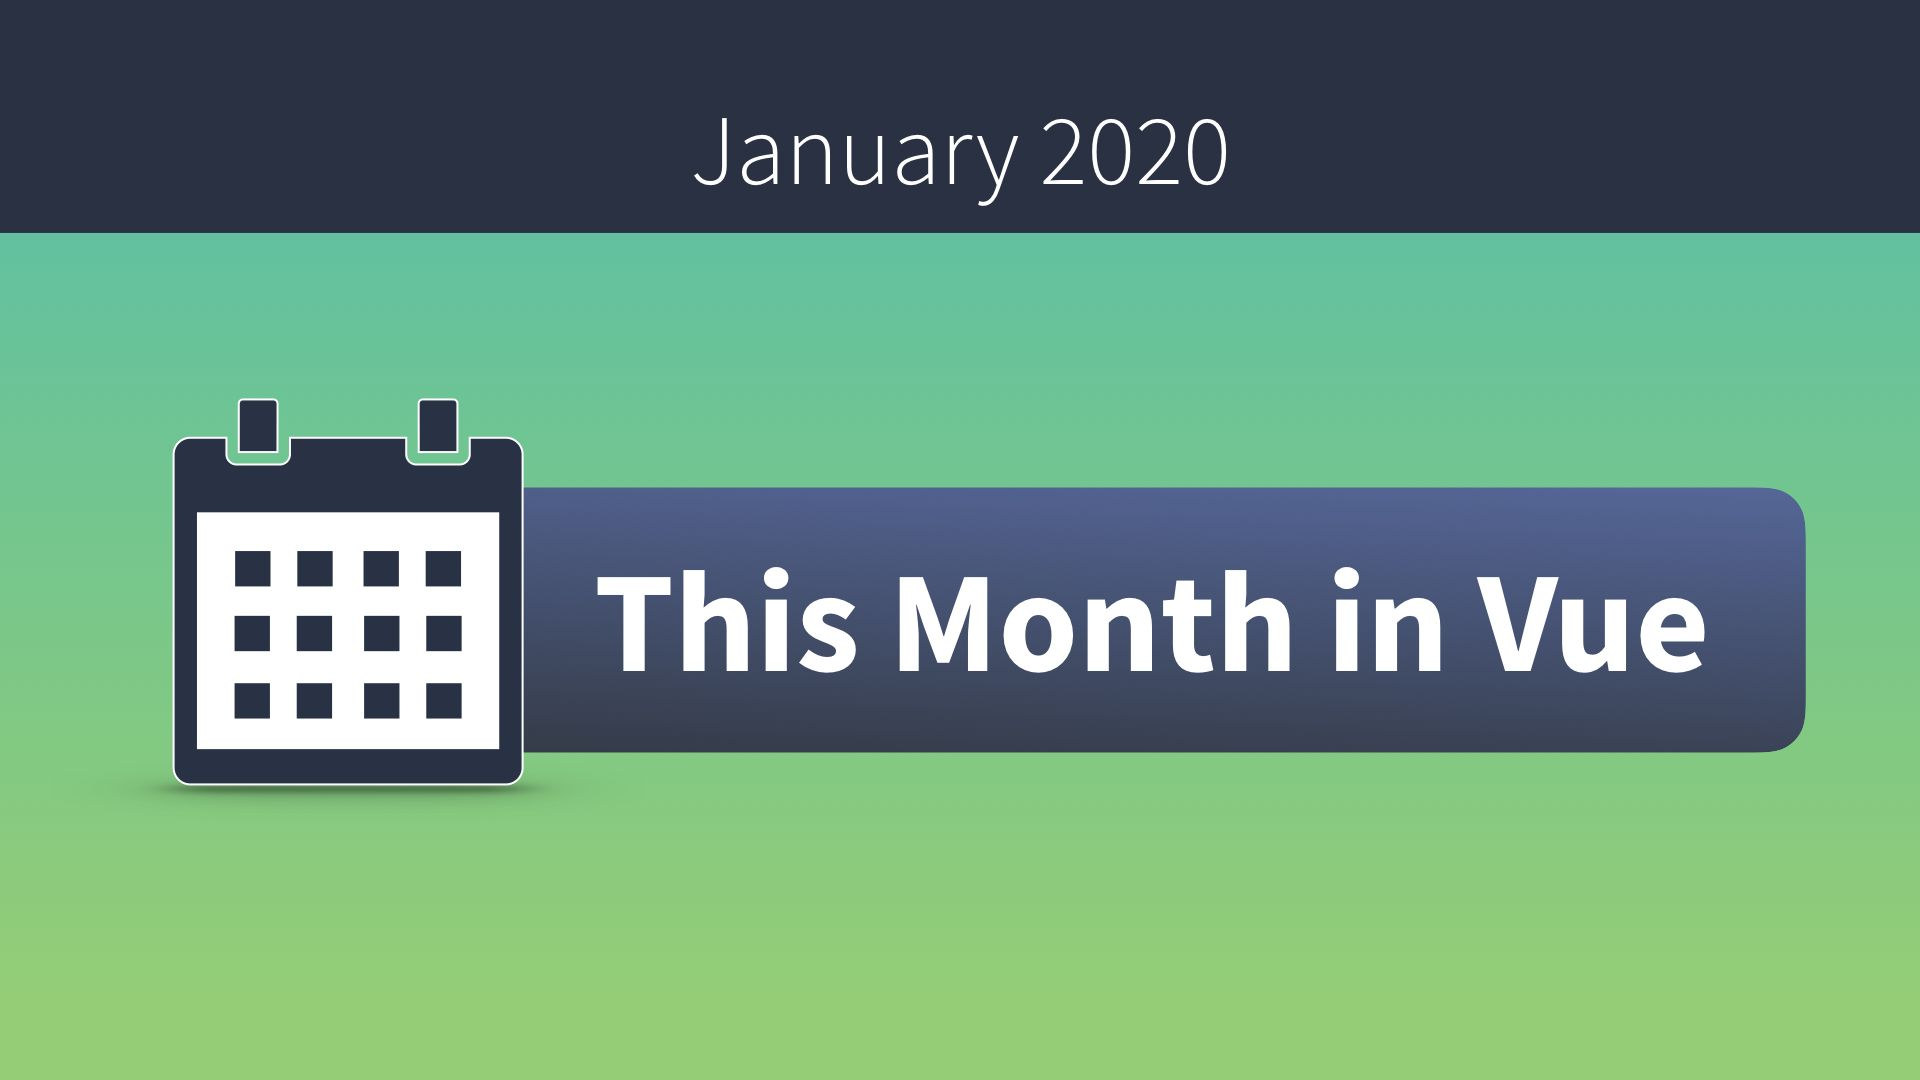 This Month in Vue - January 2020